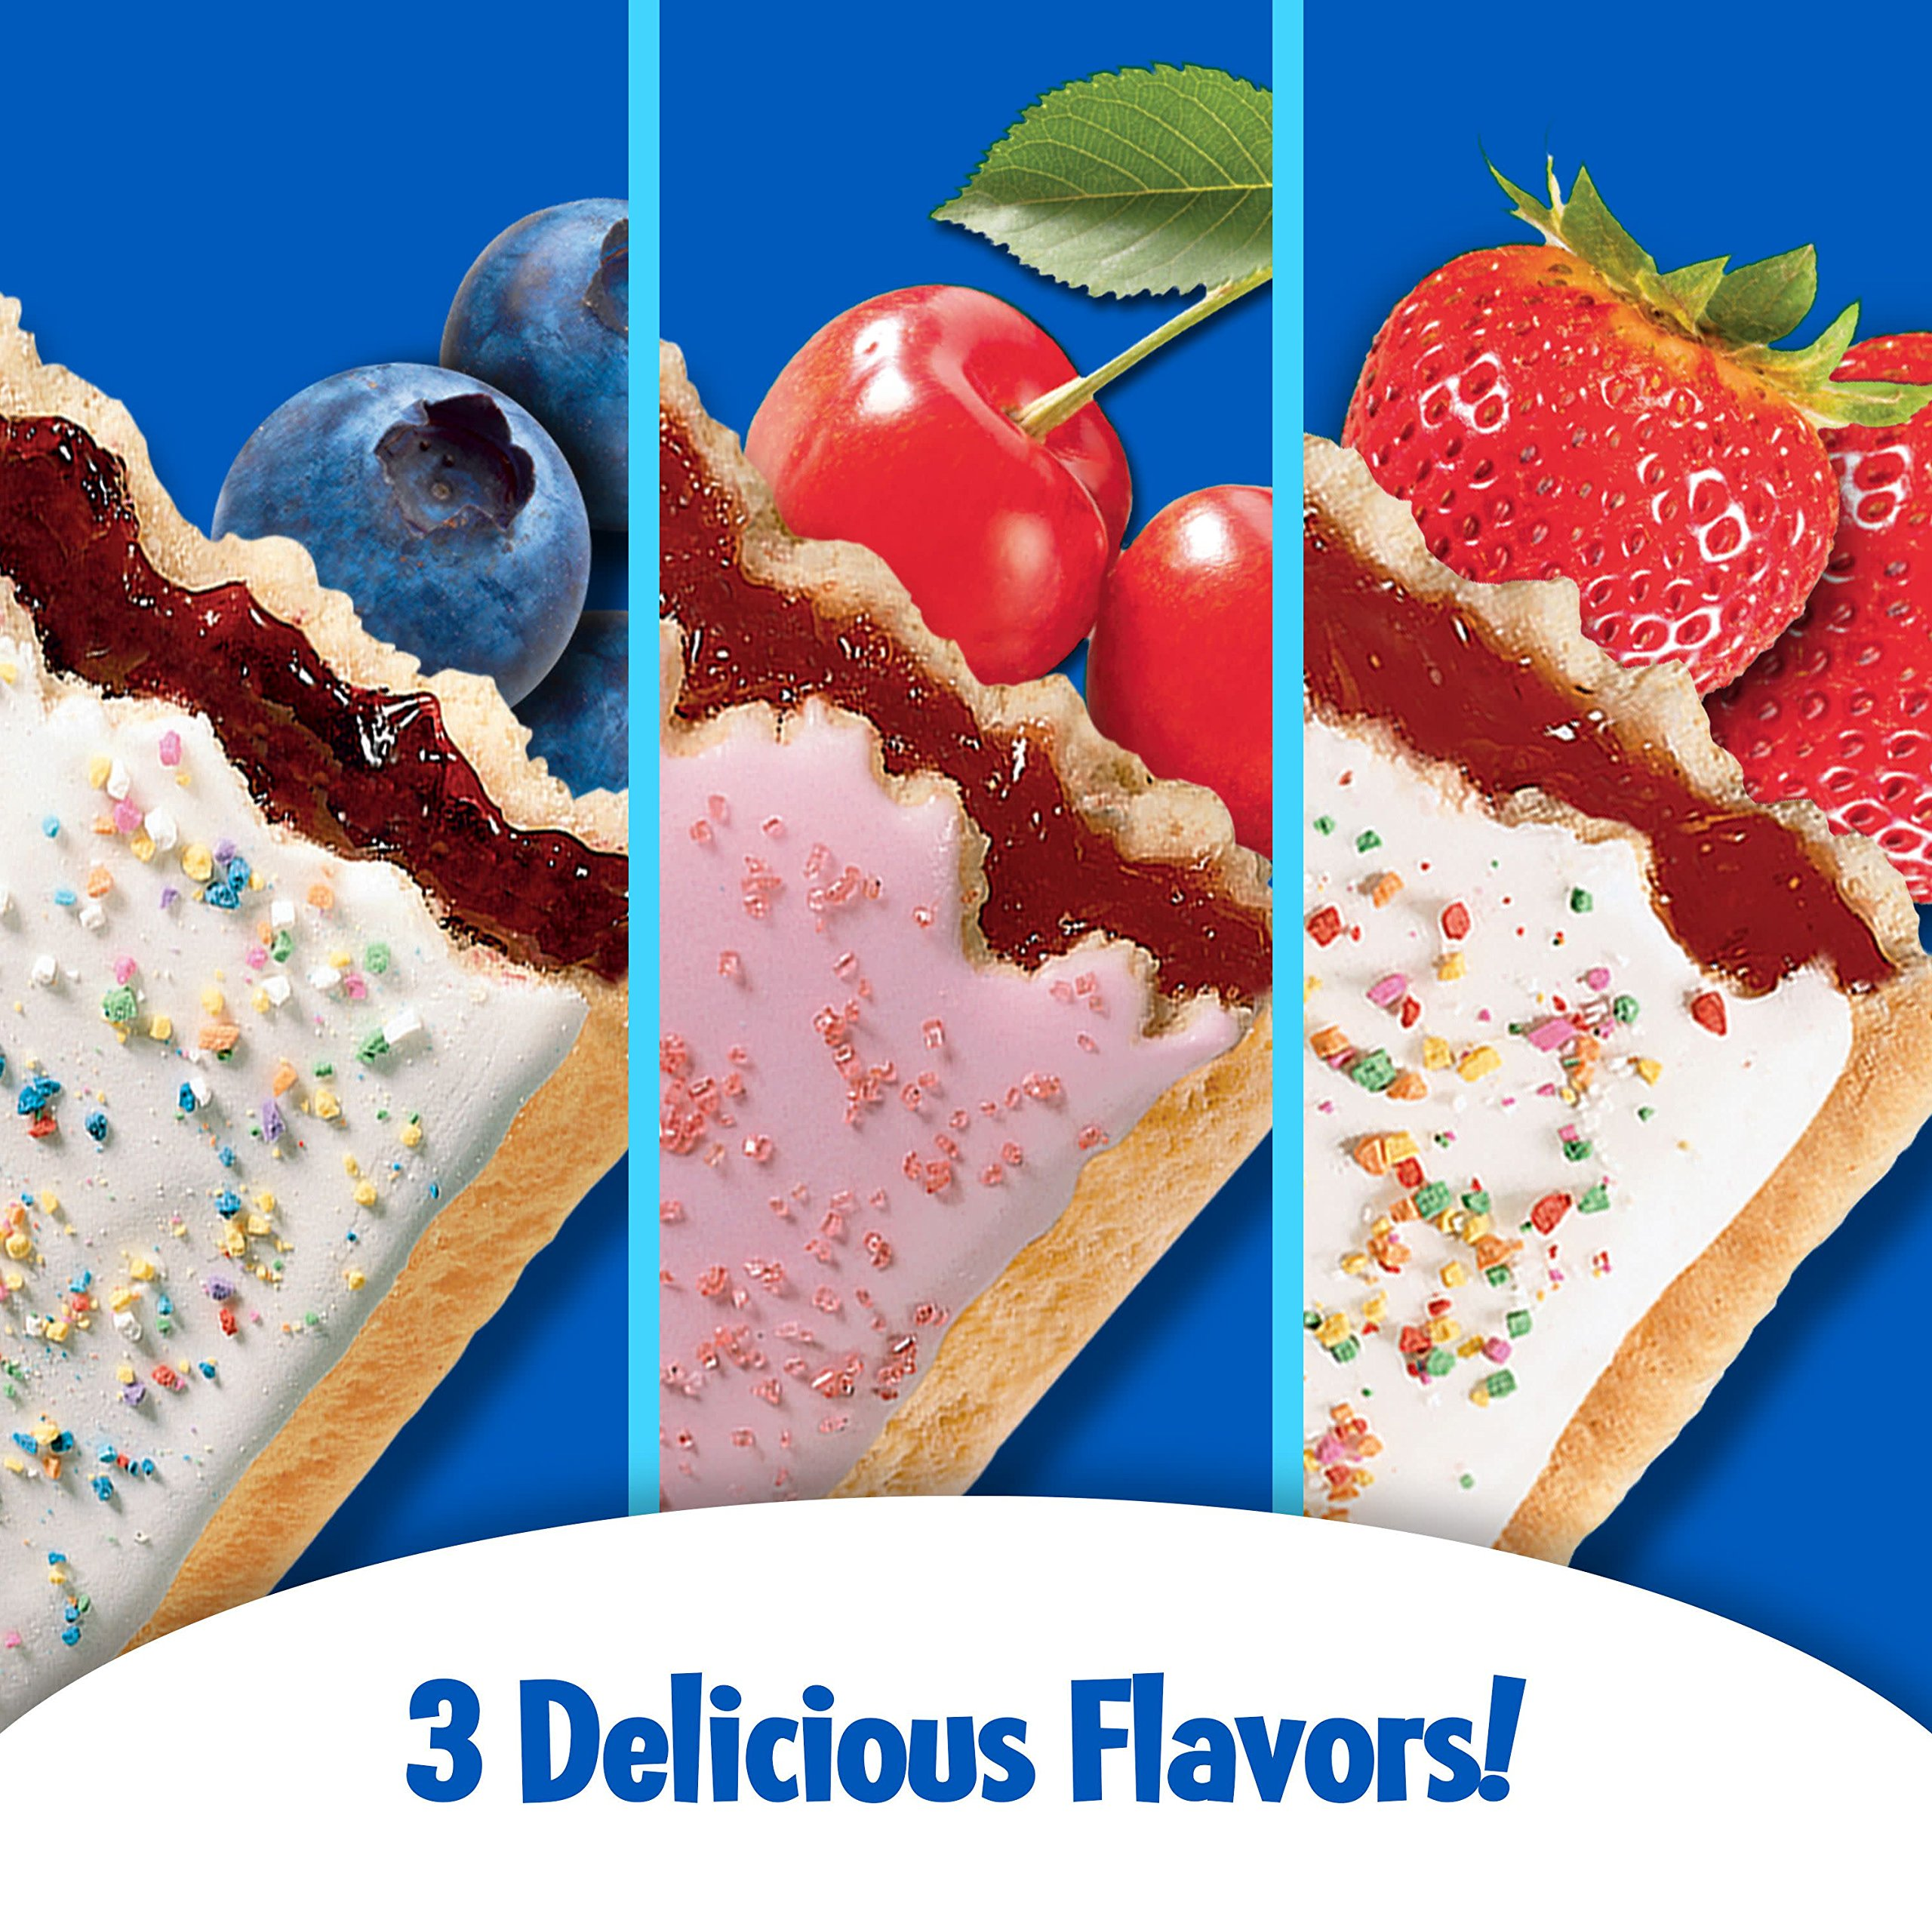 Pop-Tarts Breakfast Toaster Pastries, Flavored Variety Pack, Frosted Strawberry, Frosted Blueberry, Frosted Cherry, 12 Count,(Pack of 12) by Pop-Tarts (Image #4)